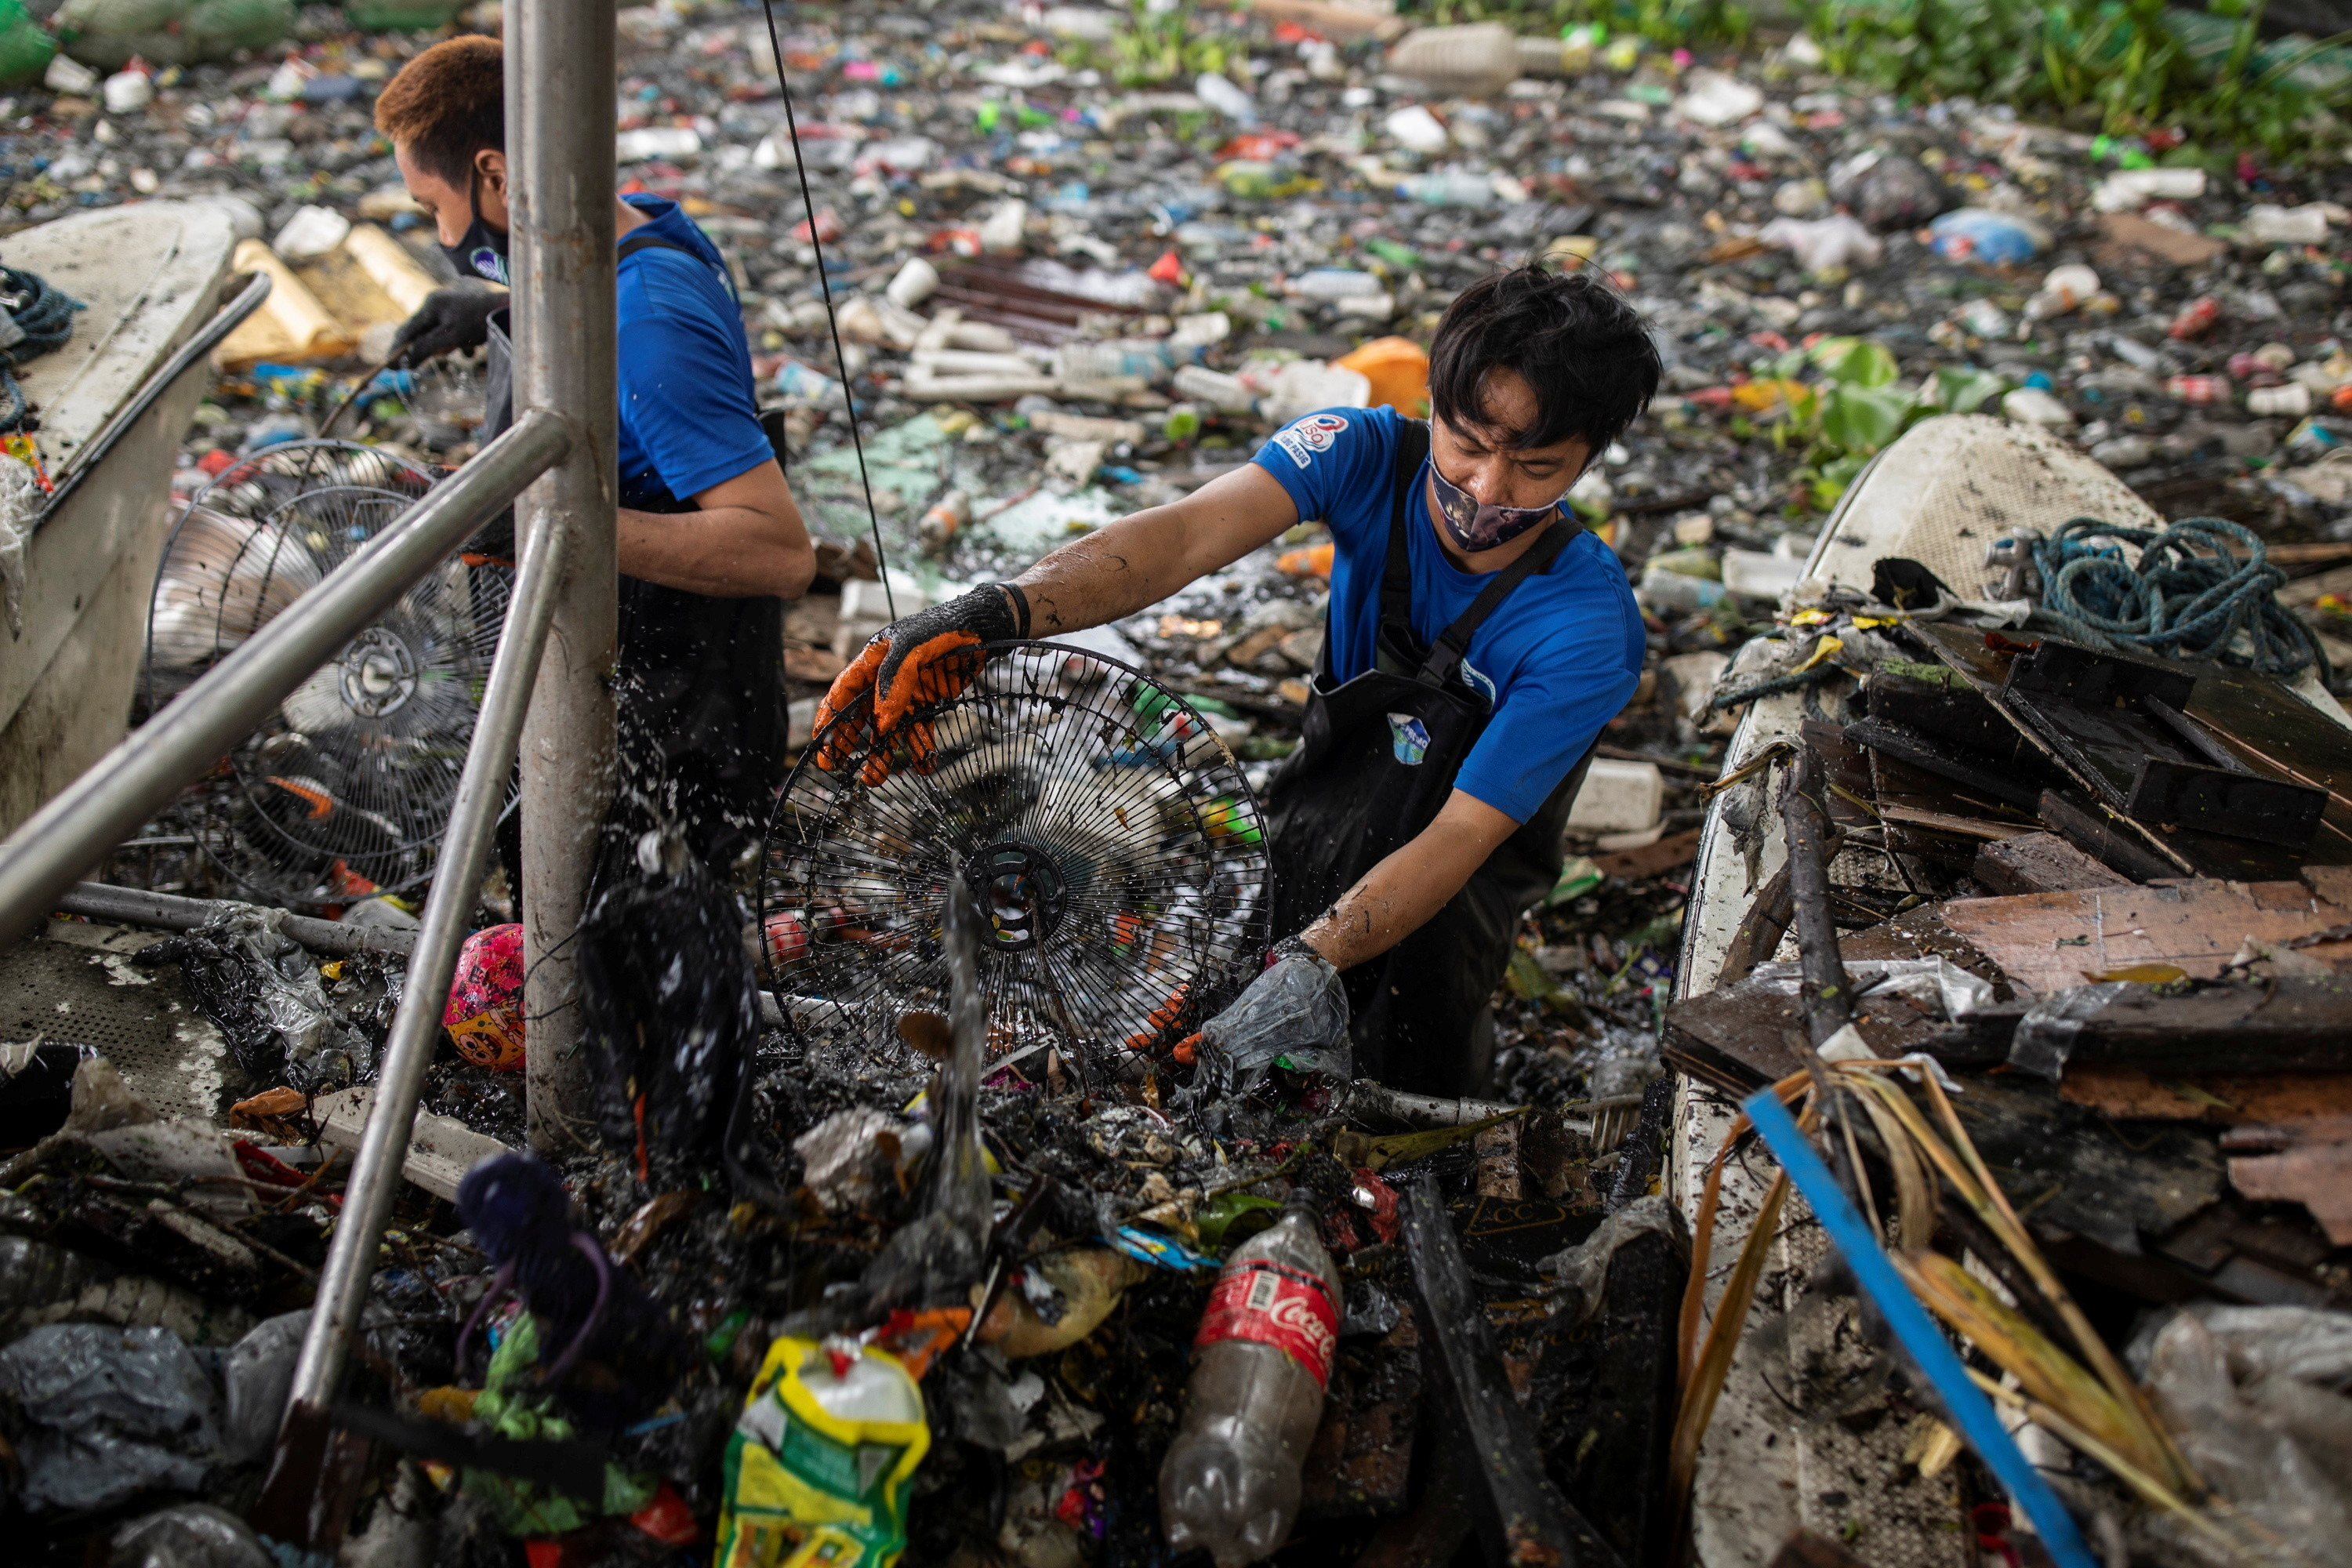 River-Warriors-trash-boat-Pasig-River-most-polluted-world-Philippines